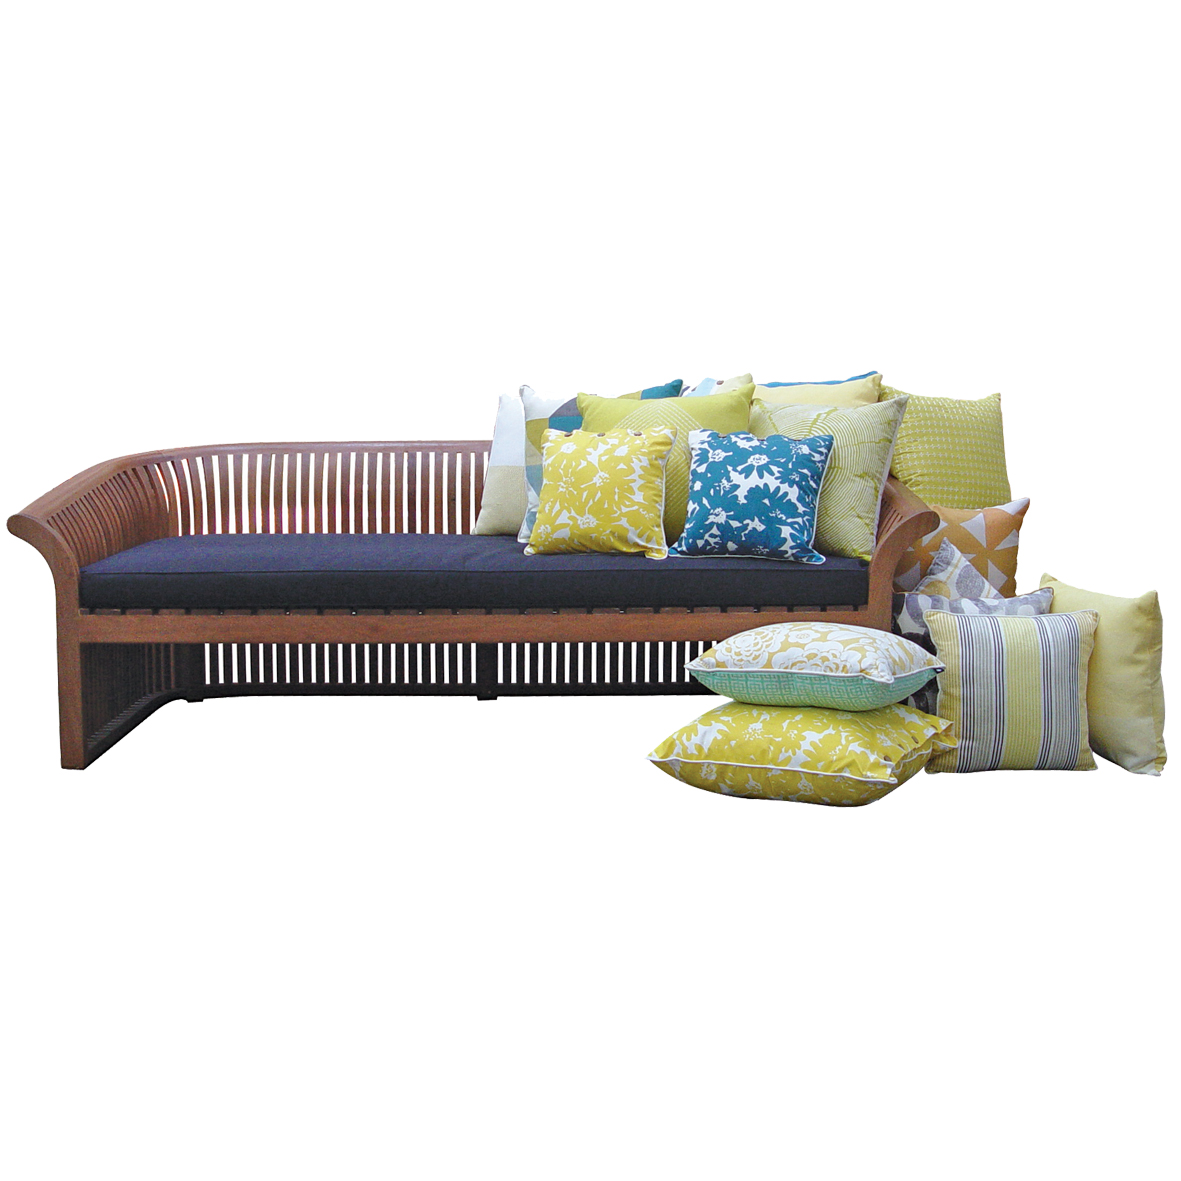 Leisure Daybeds